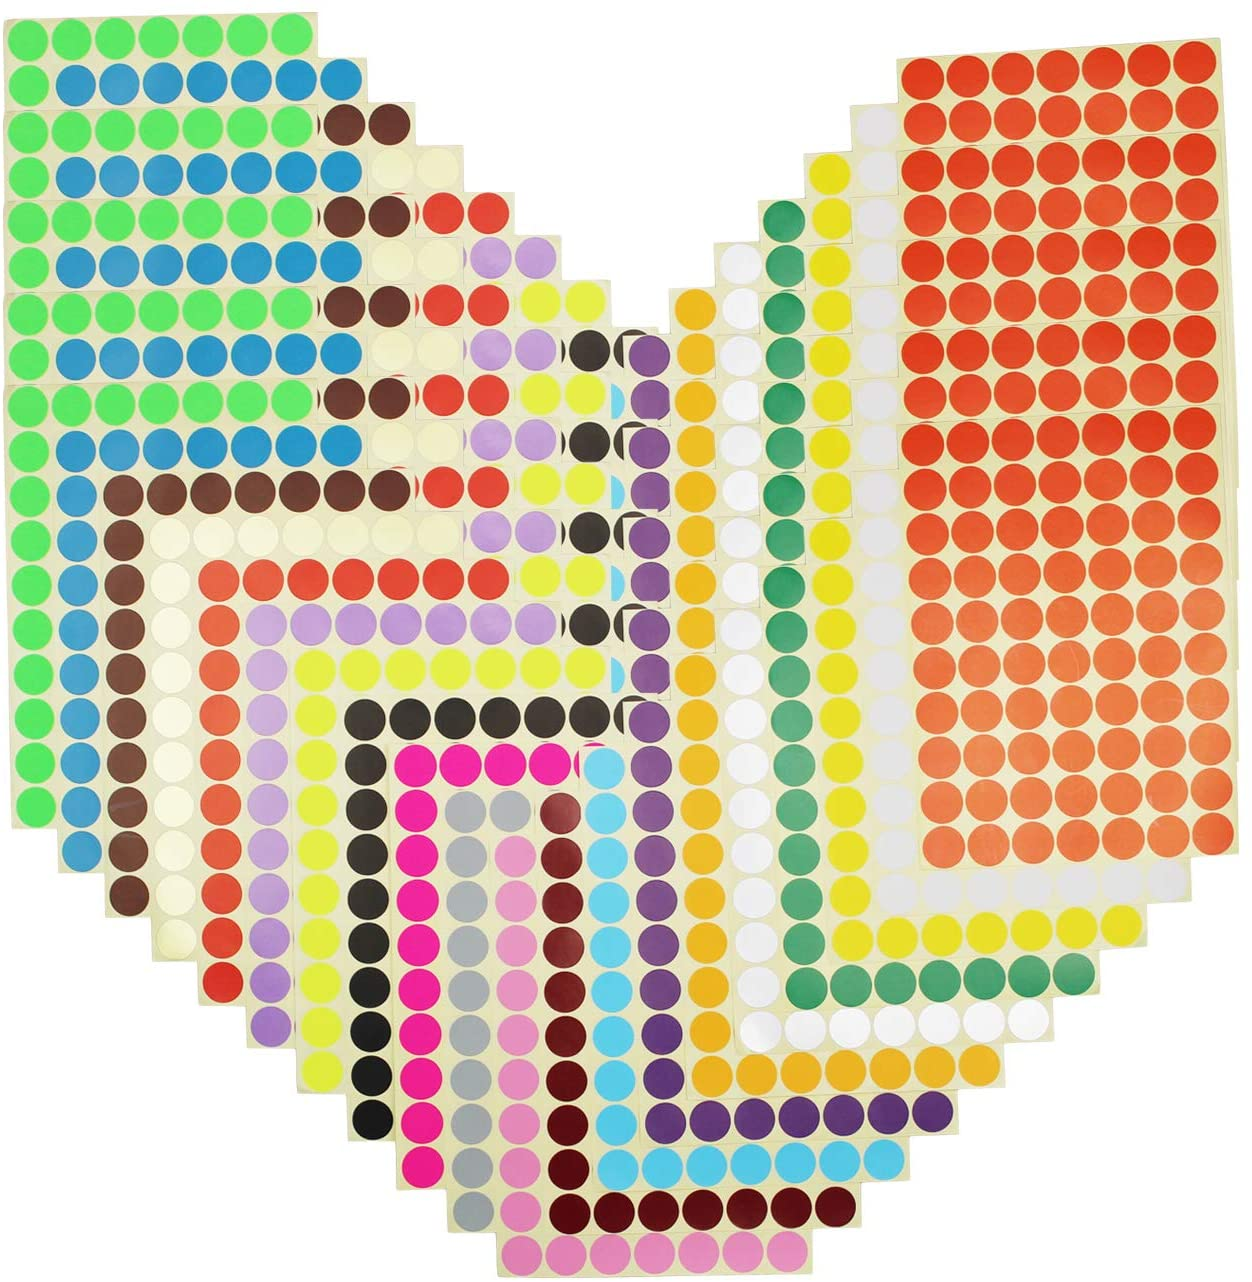 7000 Count 3/4 inch Diameter 20 Colors Sticky Color Coding Labels Removable Small Circle Dot Stickers for Garage Sale Home Office Decor Planner Classroom Organization